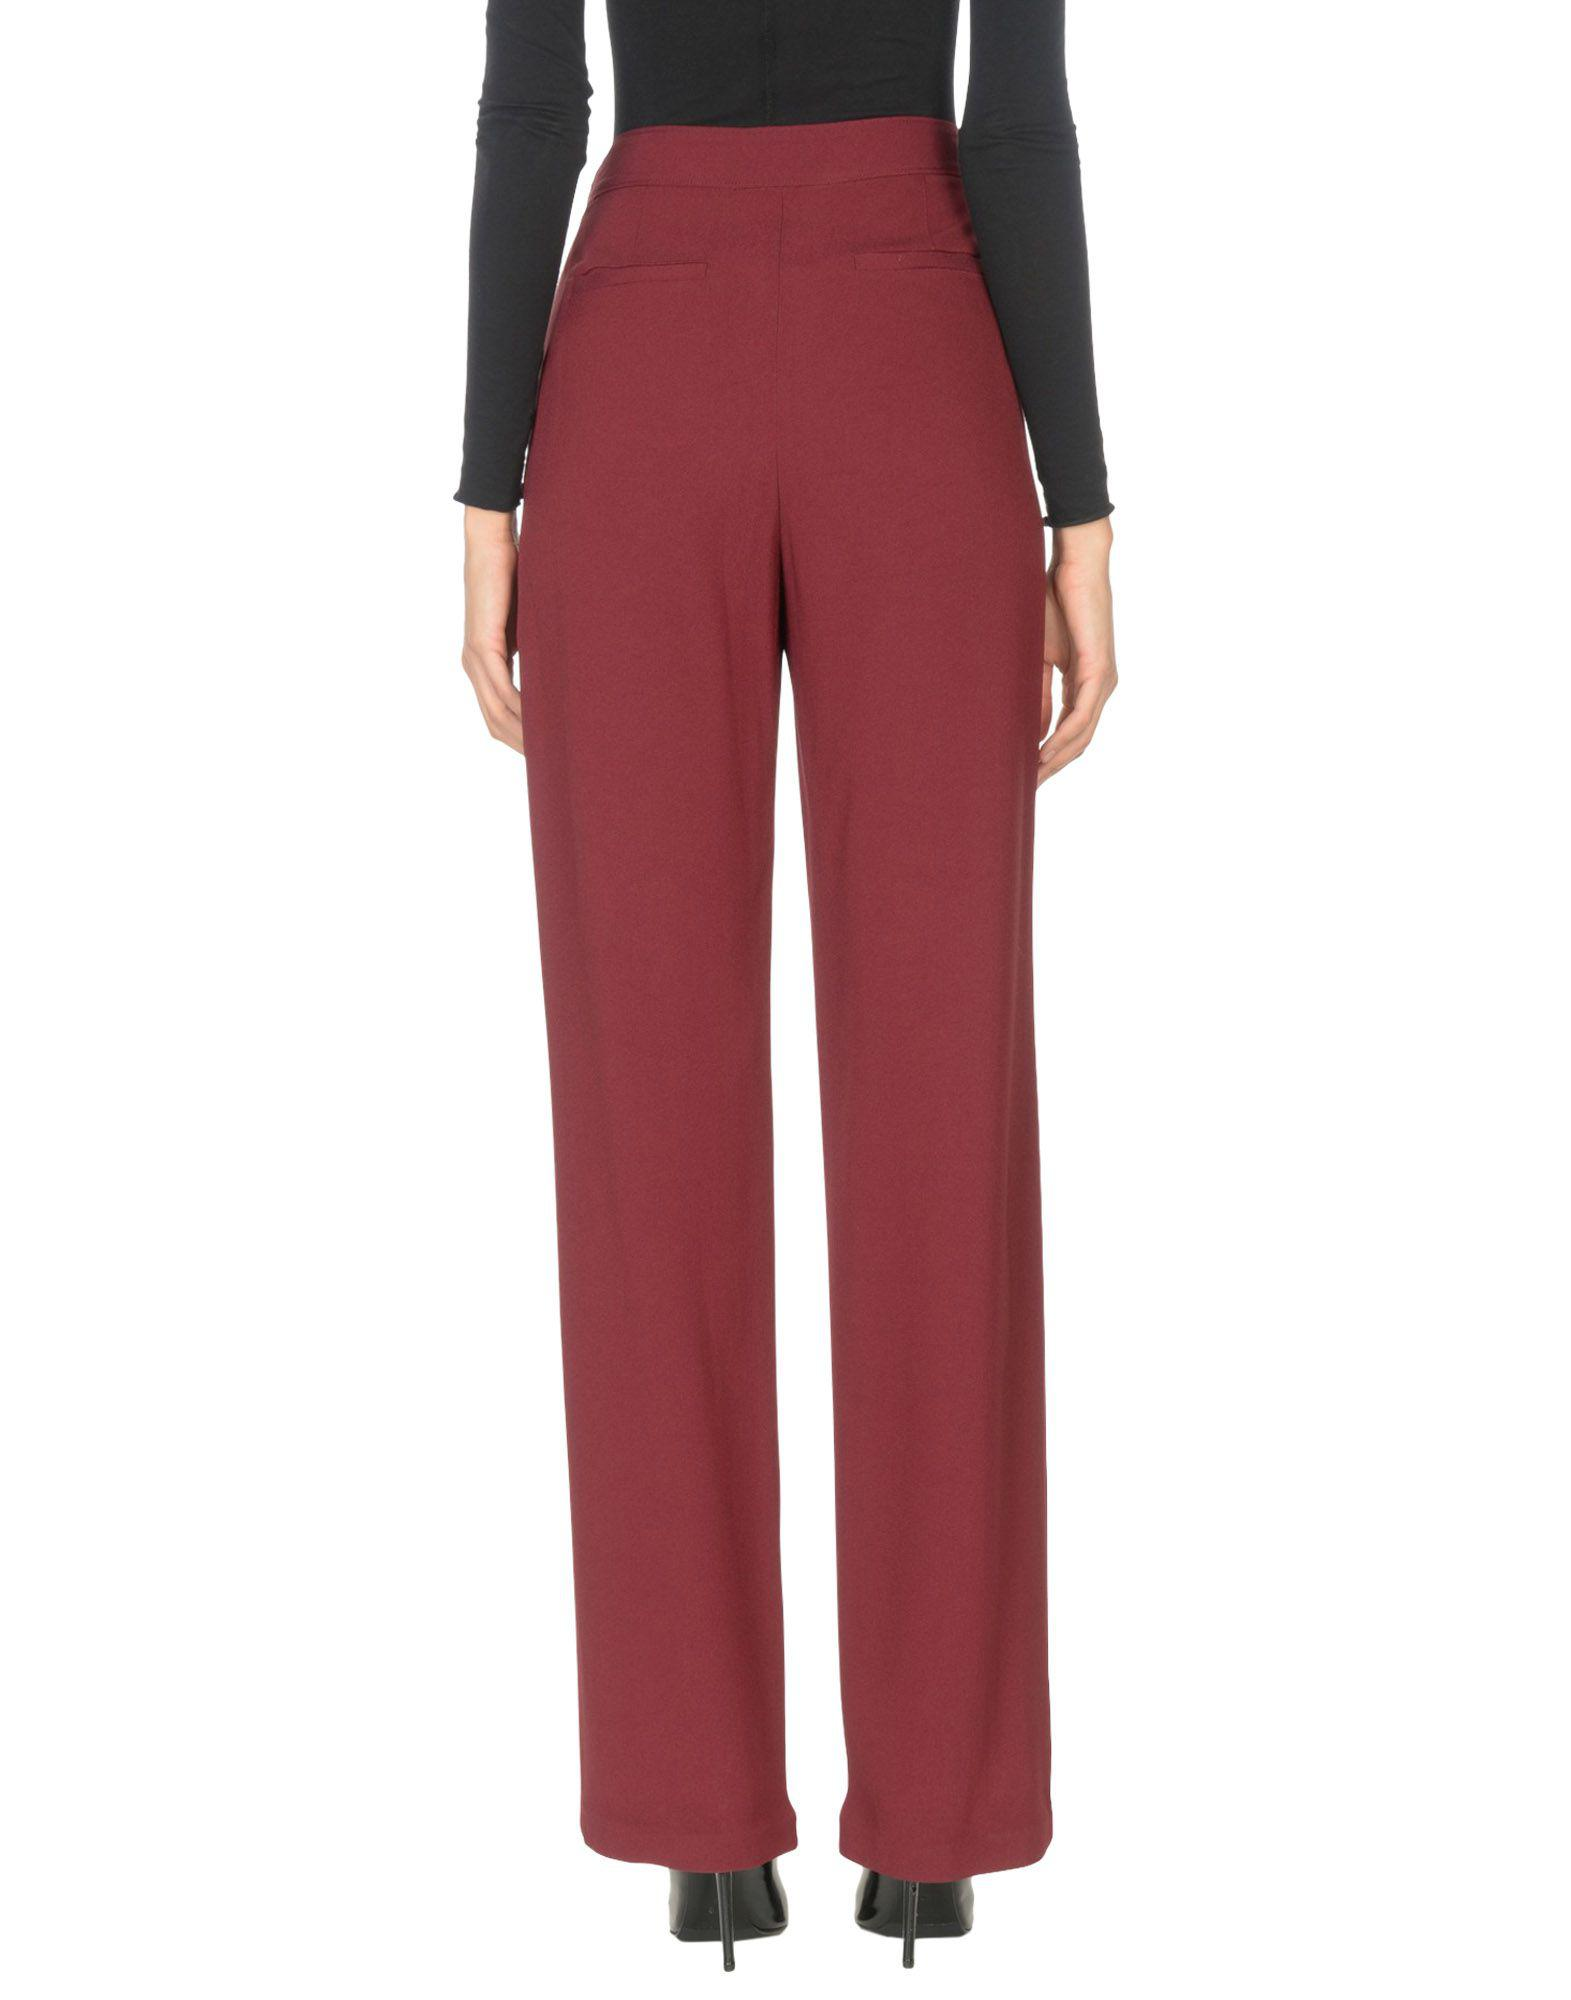 71800be62 Lyst - Tory Burch Casual Trouser in Red